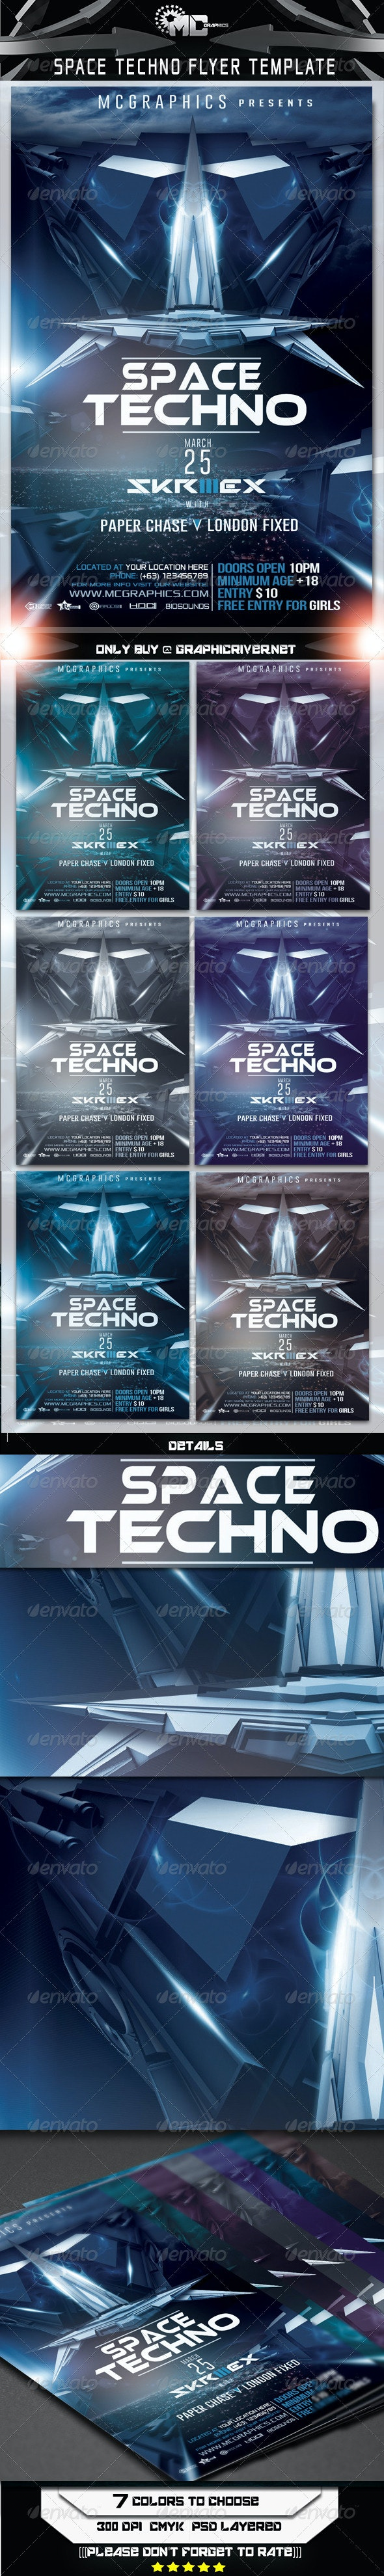 Space Techno Flyer  Template - Flyers Print Templates